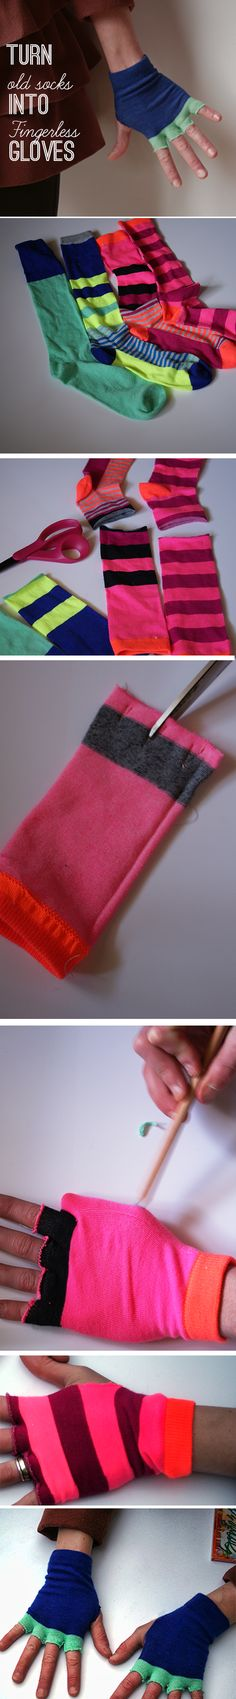 """DIY gloves from old socks  Cut off socks above ankles at length you want your gloves.    Turn Socks inside out.    Sew three """"Vs"""" on raw edge for 4 fingers (see photo).    Cut between stitched V's to create fingers.    Put on glove and mark where thumb is.    Cut 1/2 inch slit for thumb."""